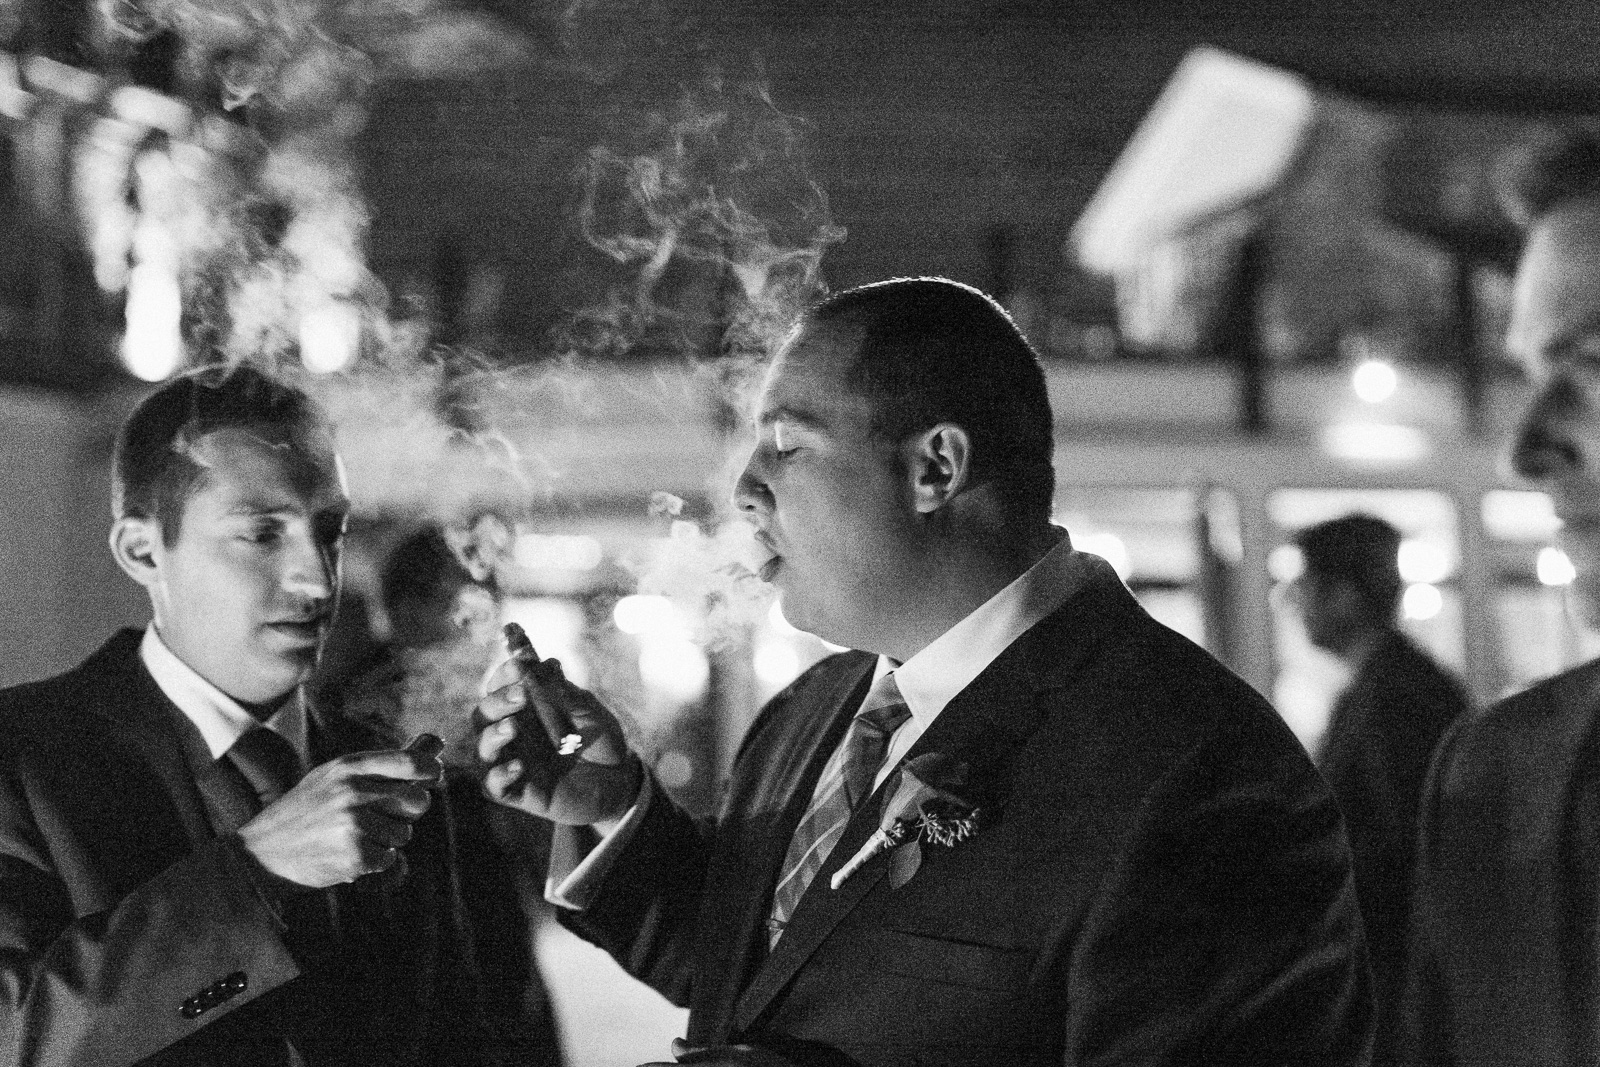 cigar smoking at night wedding reception